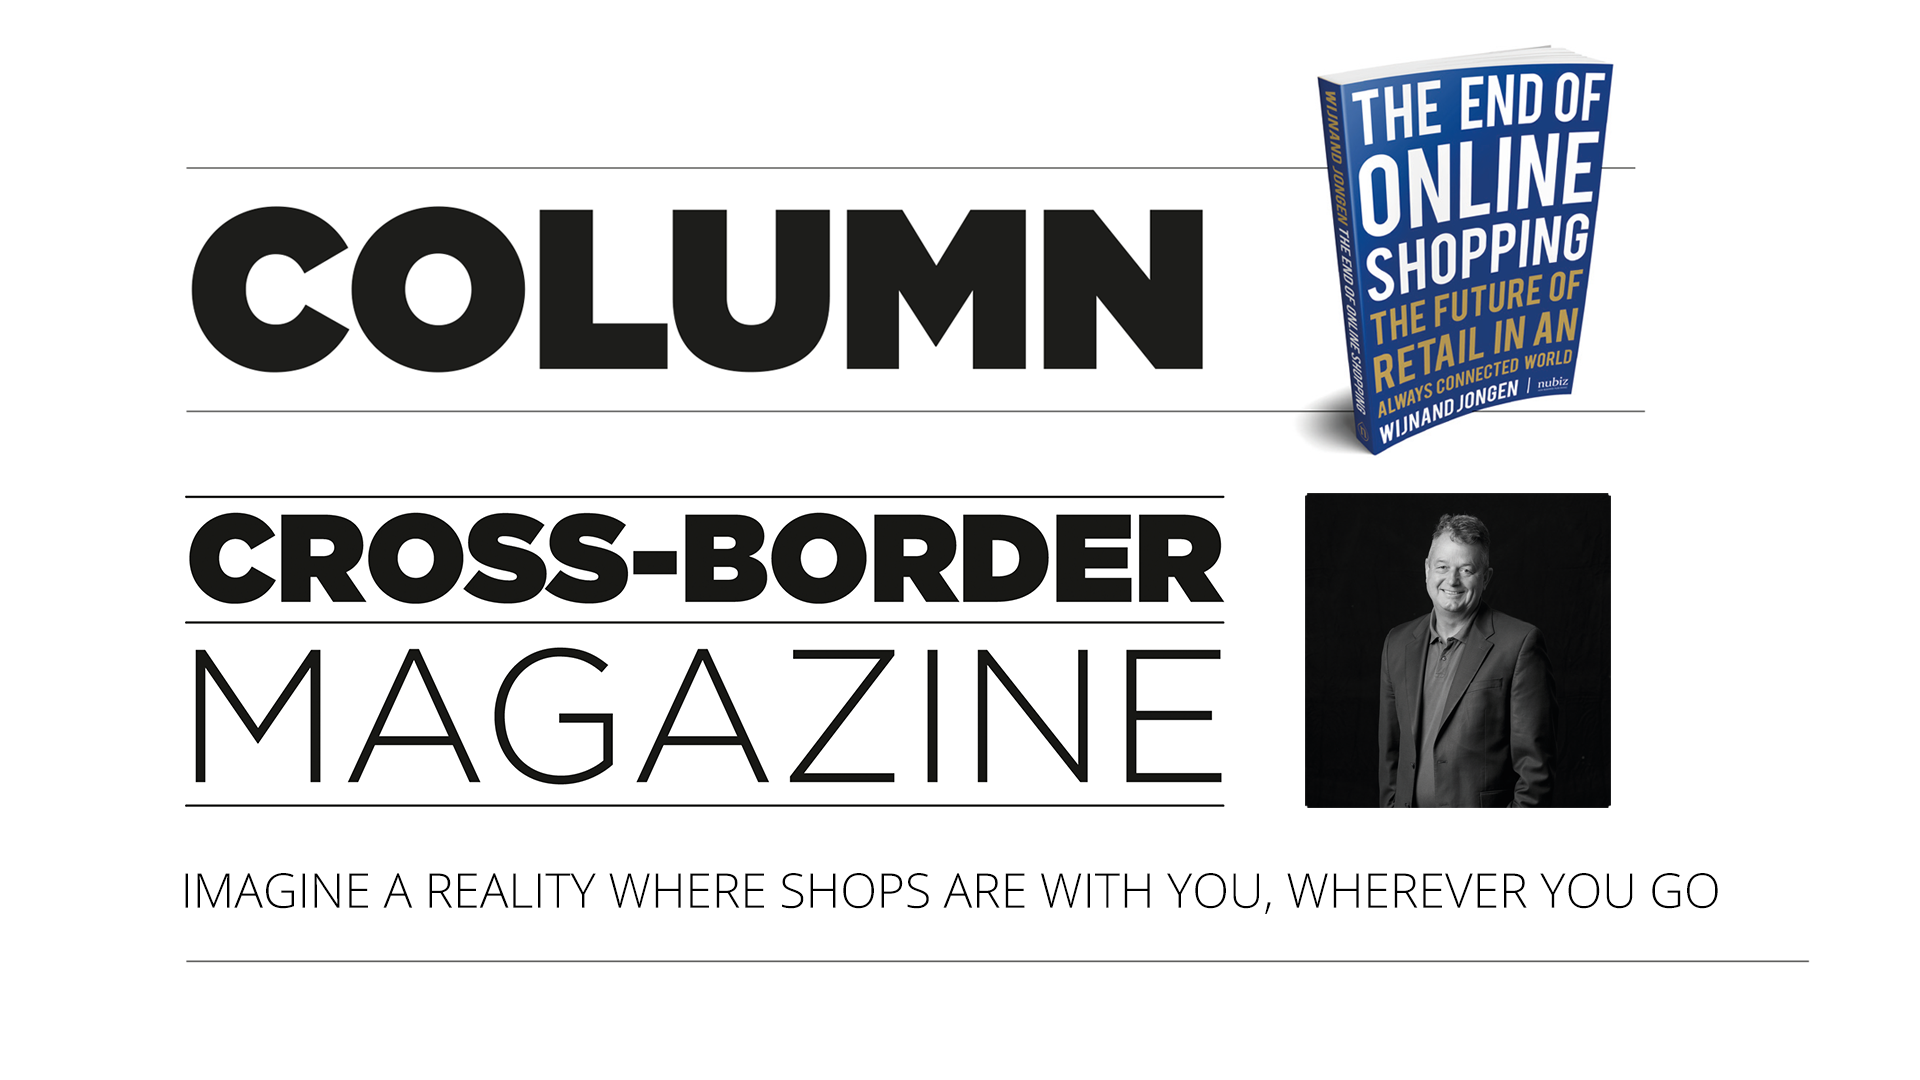 Cross-Border Magazine 7th edition – A reality where shops are with you wherever you go